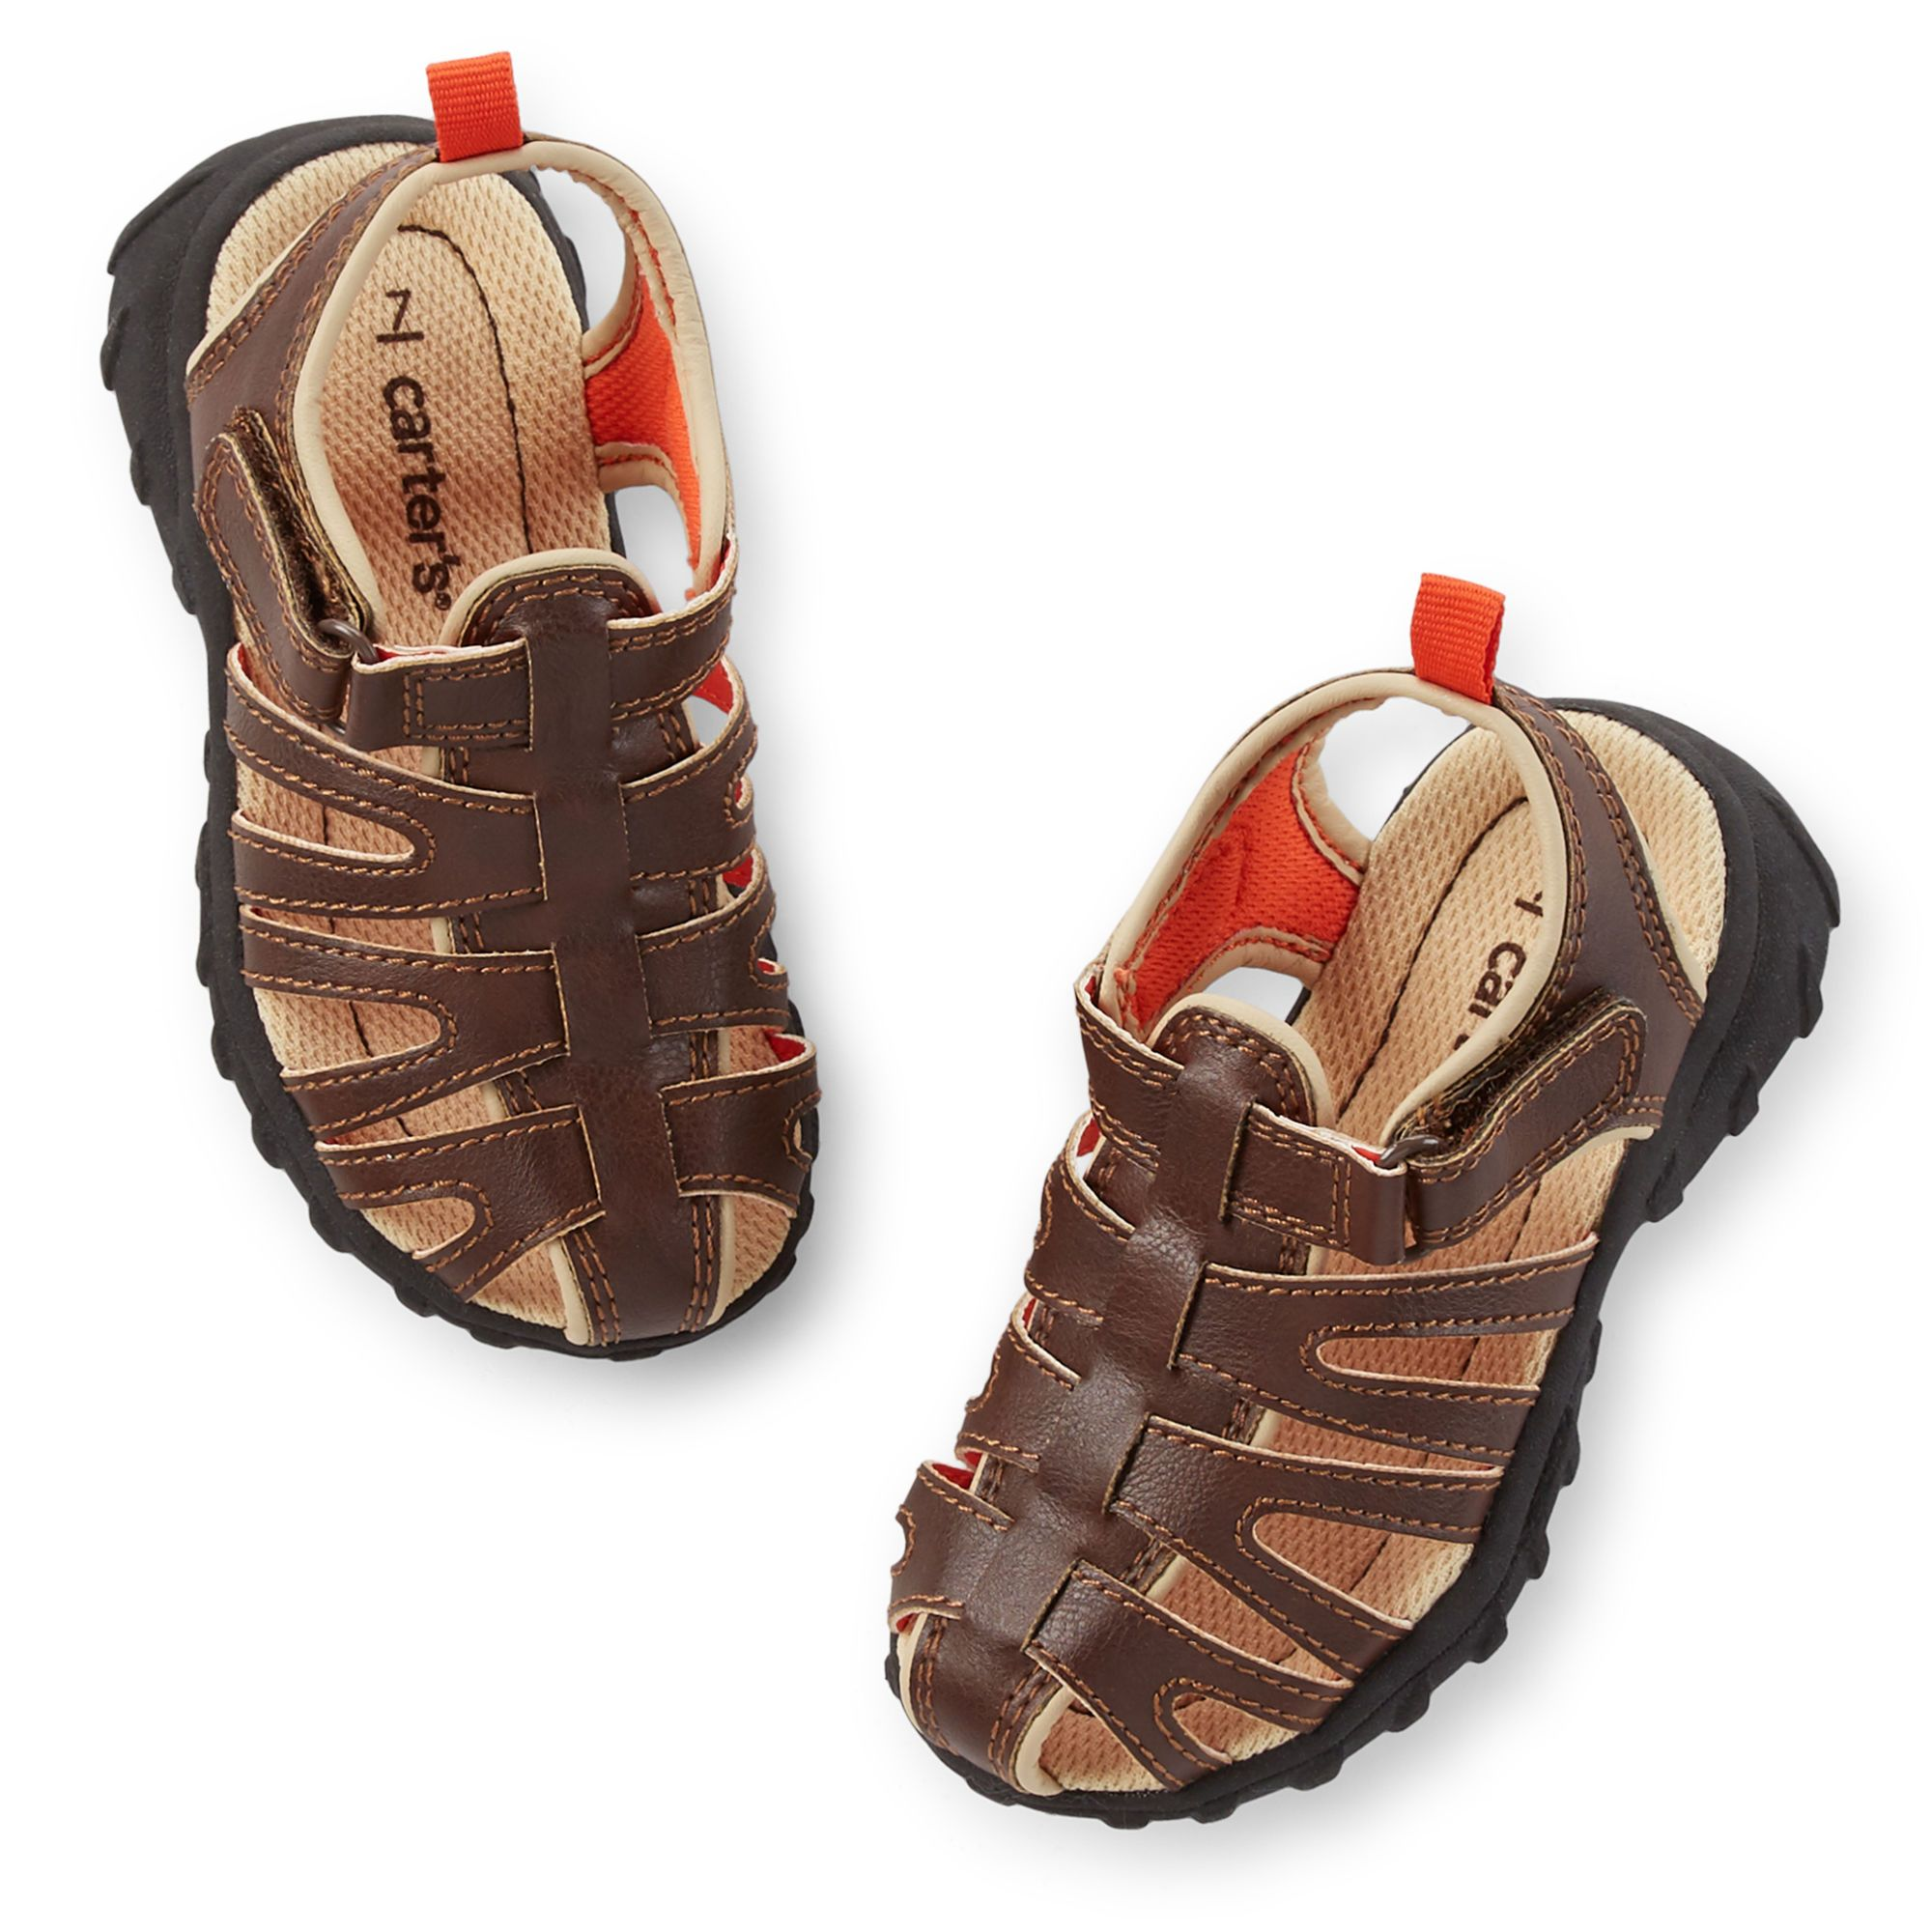 Carter's Fisherman Sandals | Carters.com | Fisherman ...